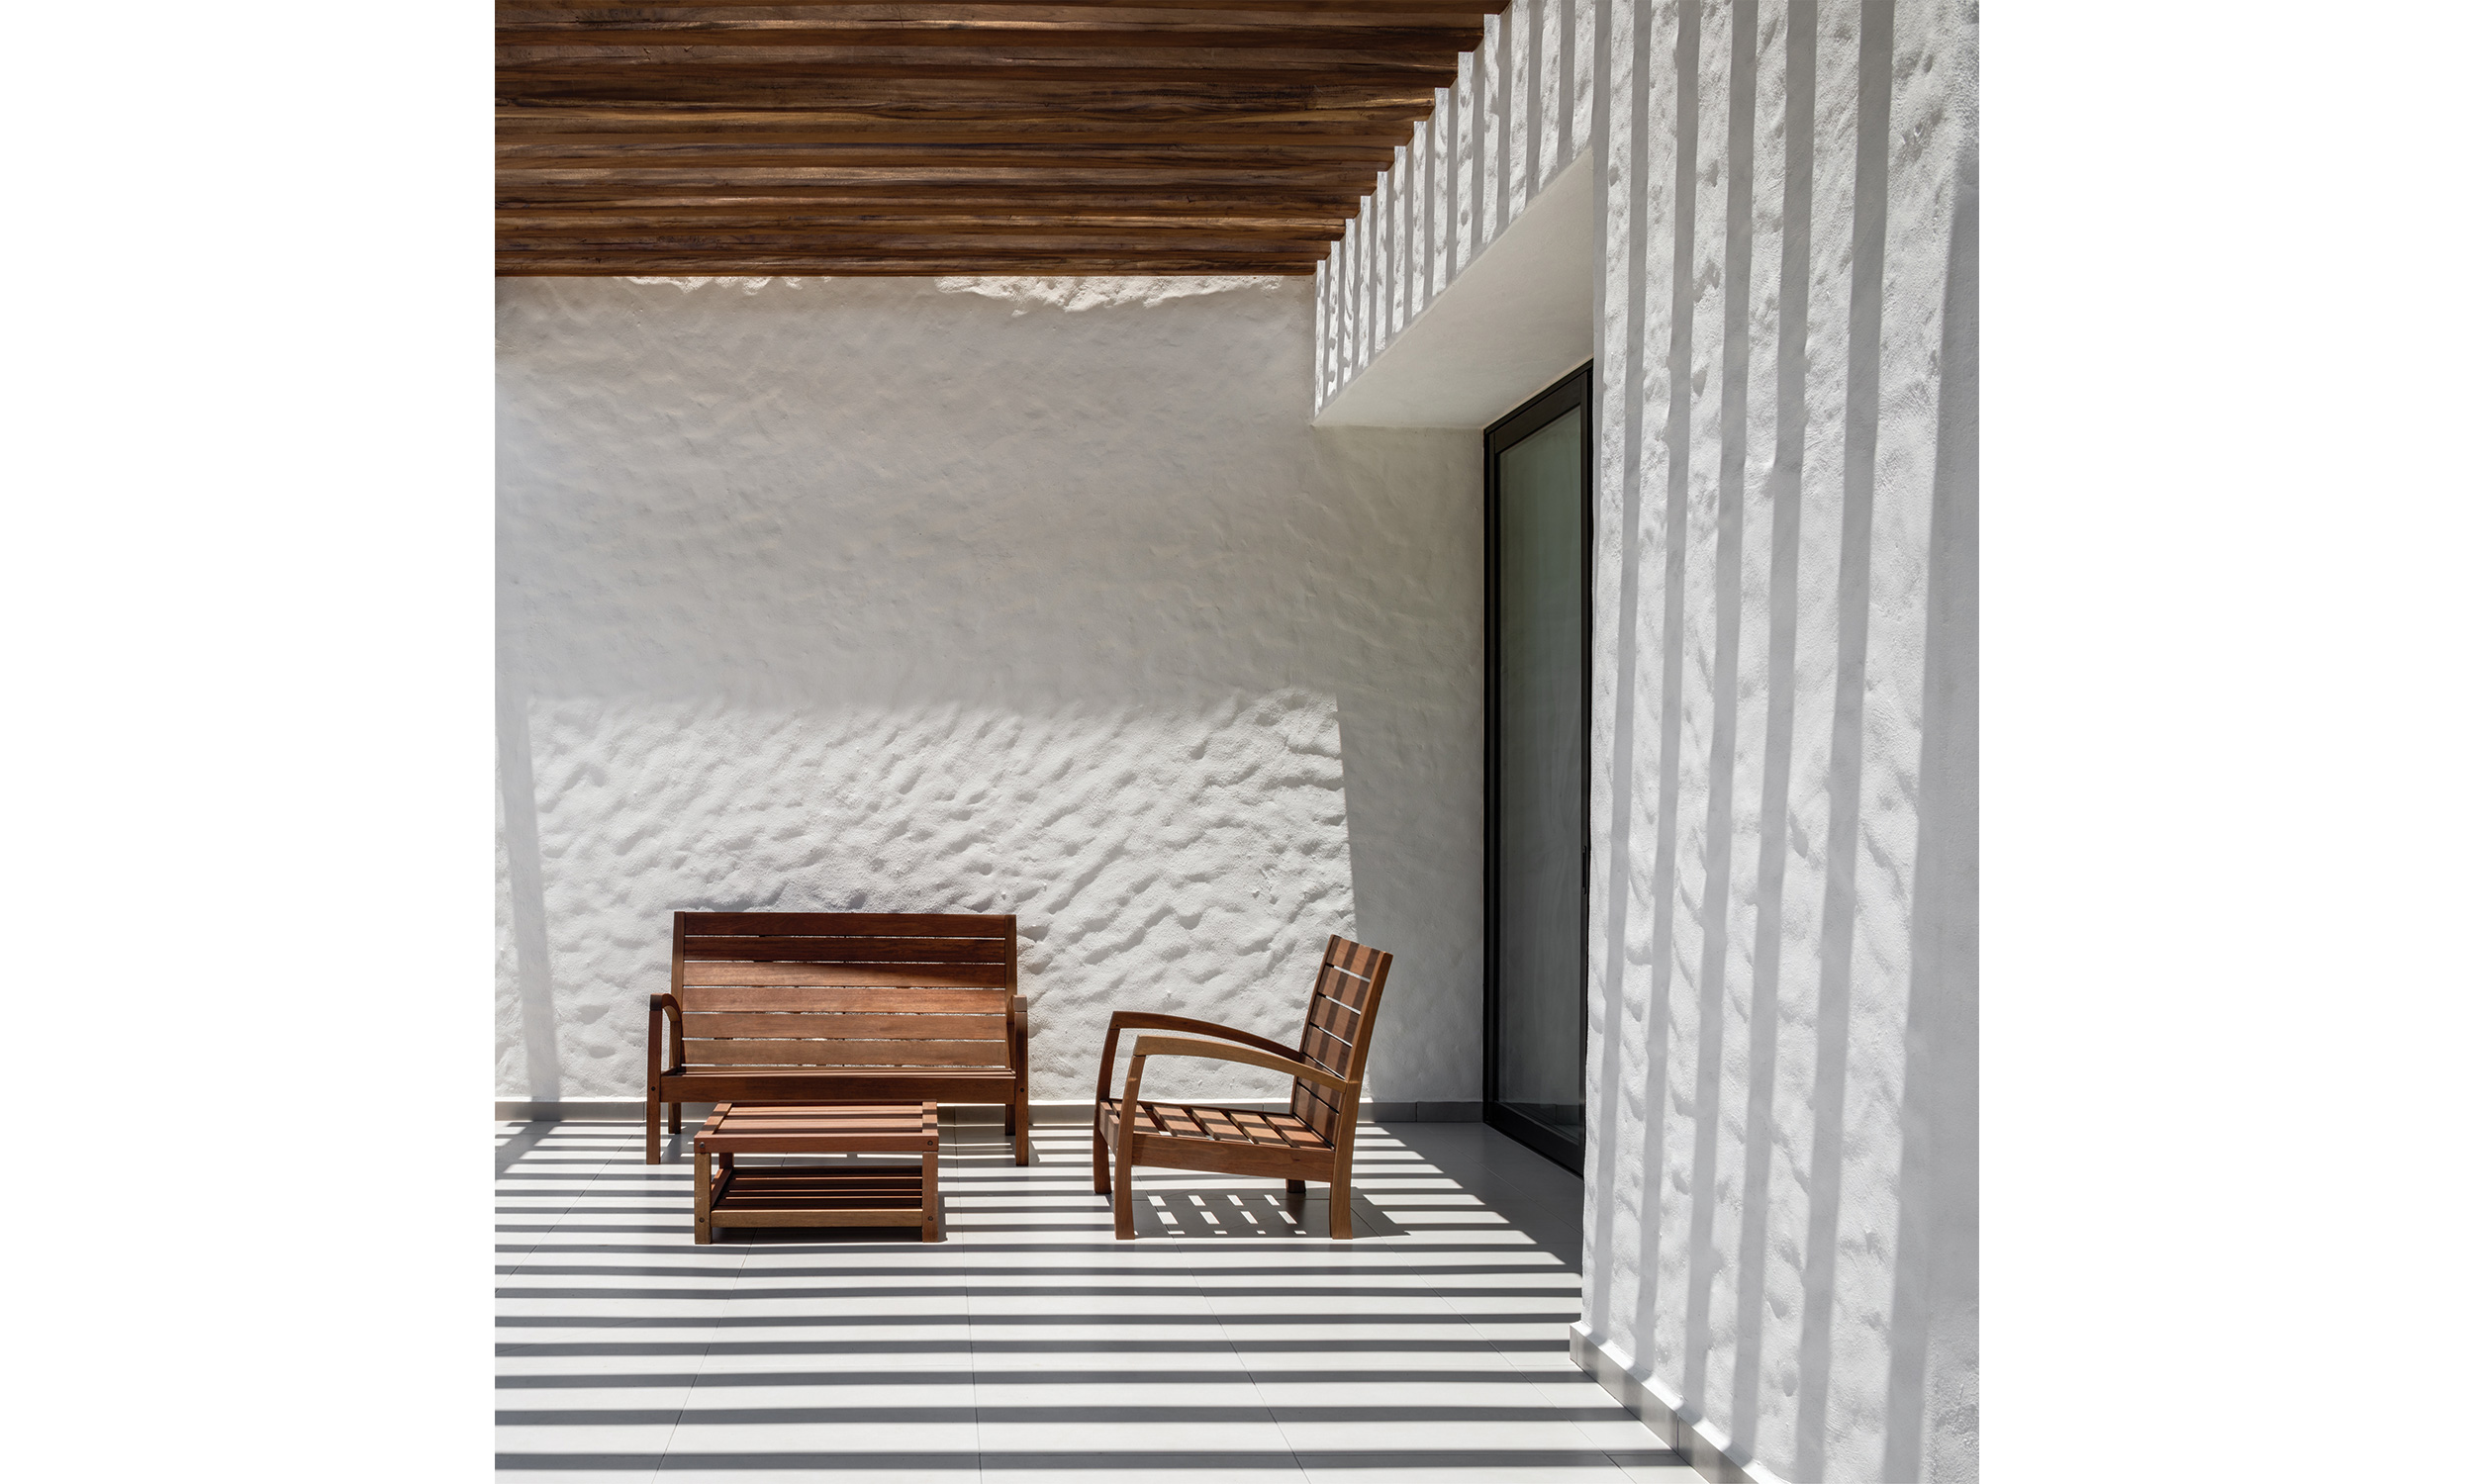 main_office_casa_galería_rafaél_gamo_256_terrace